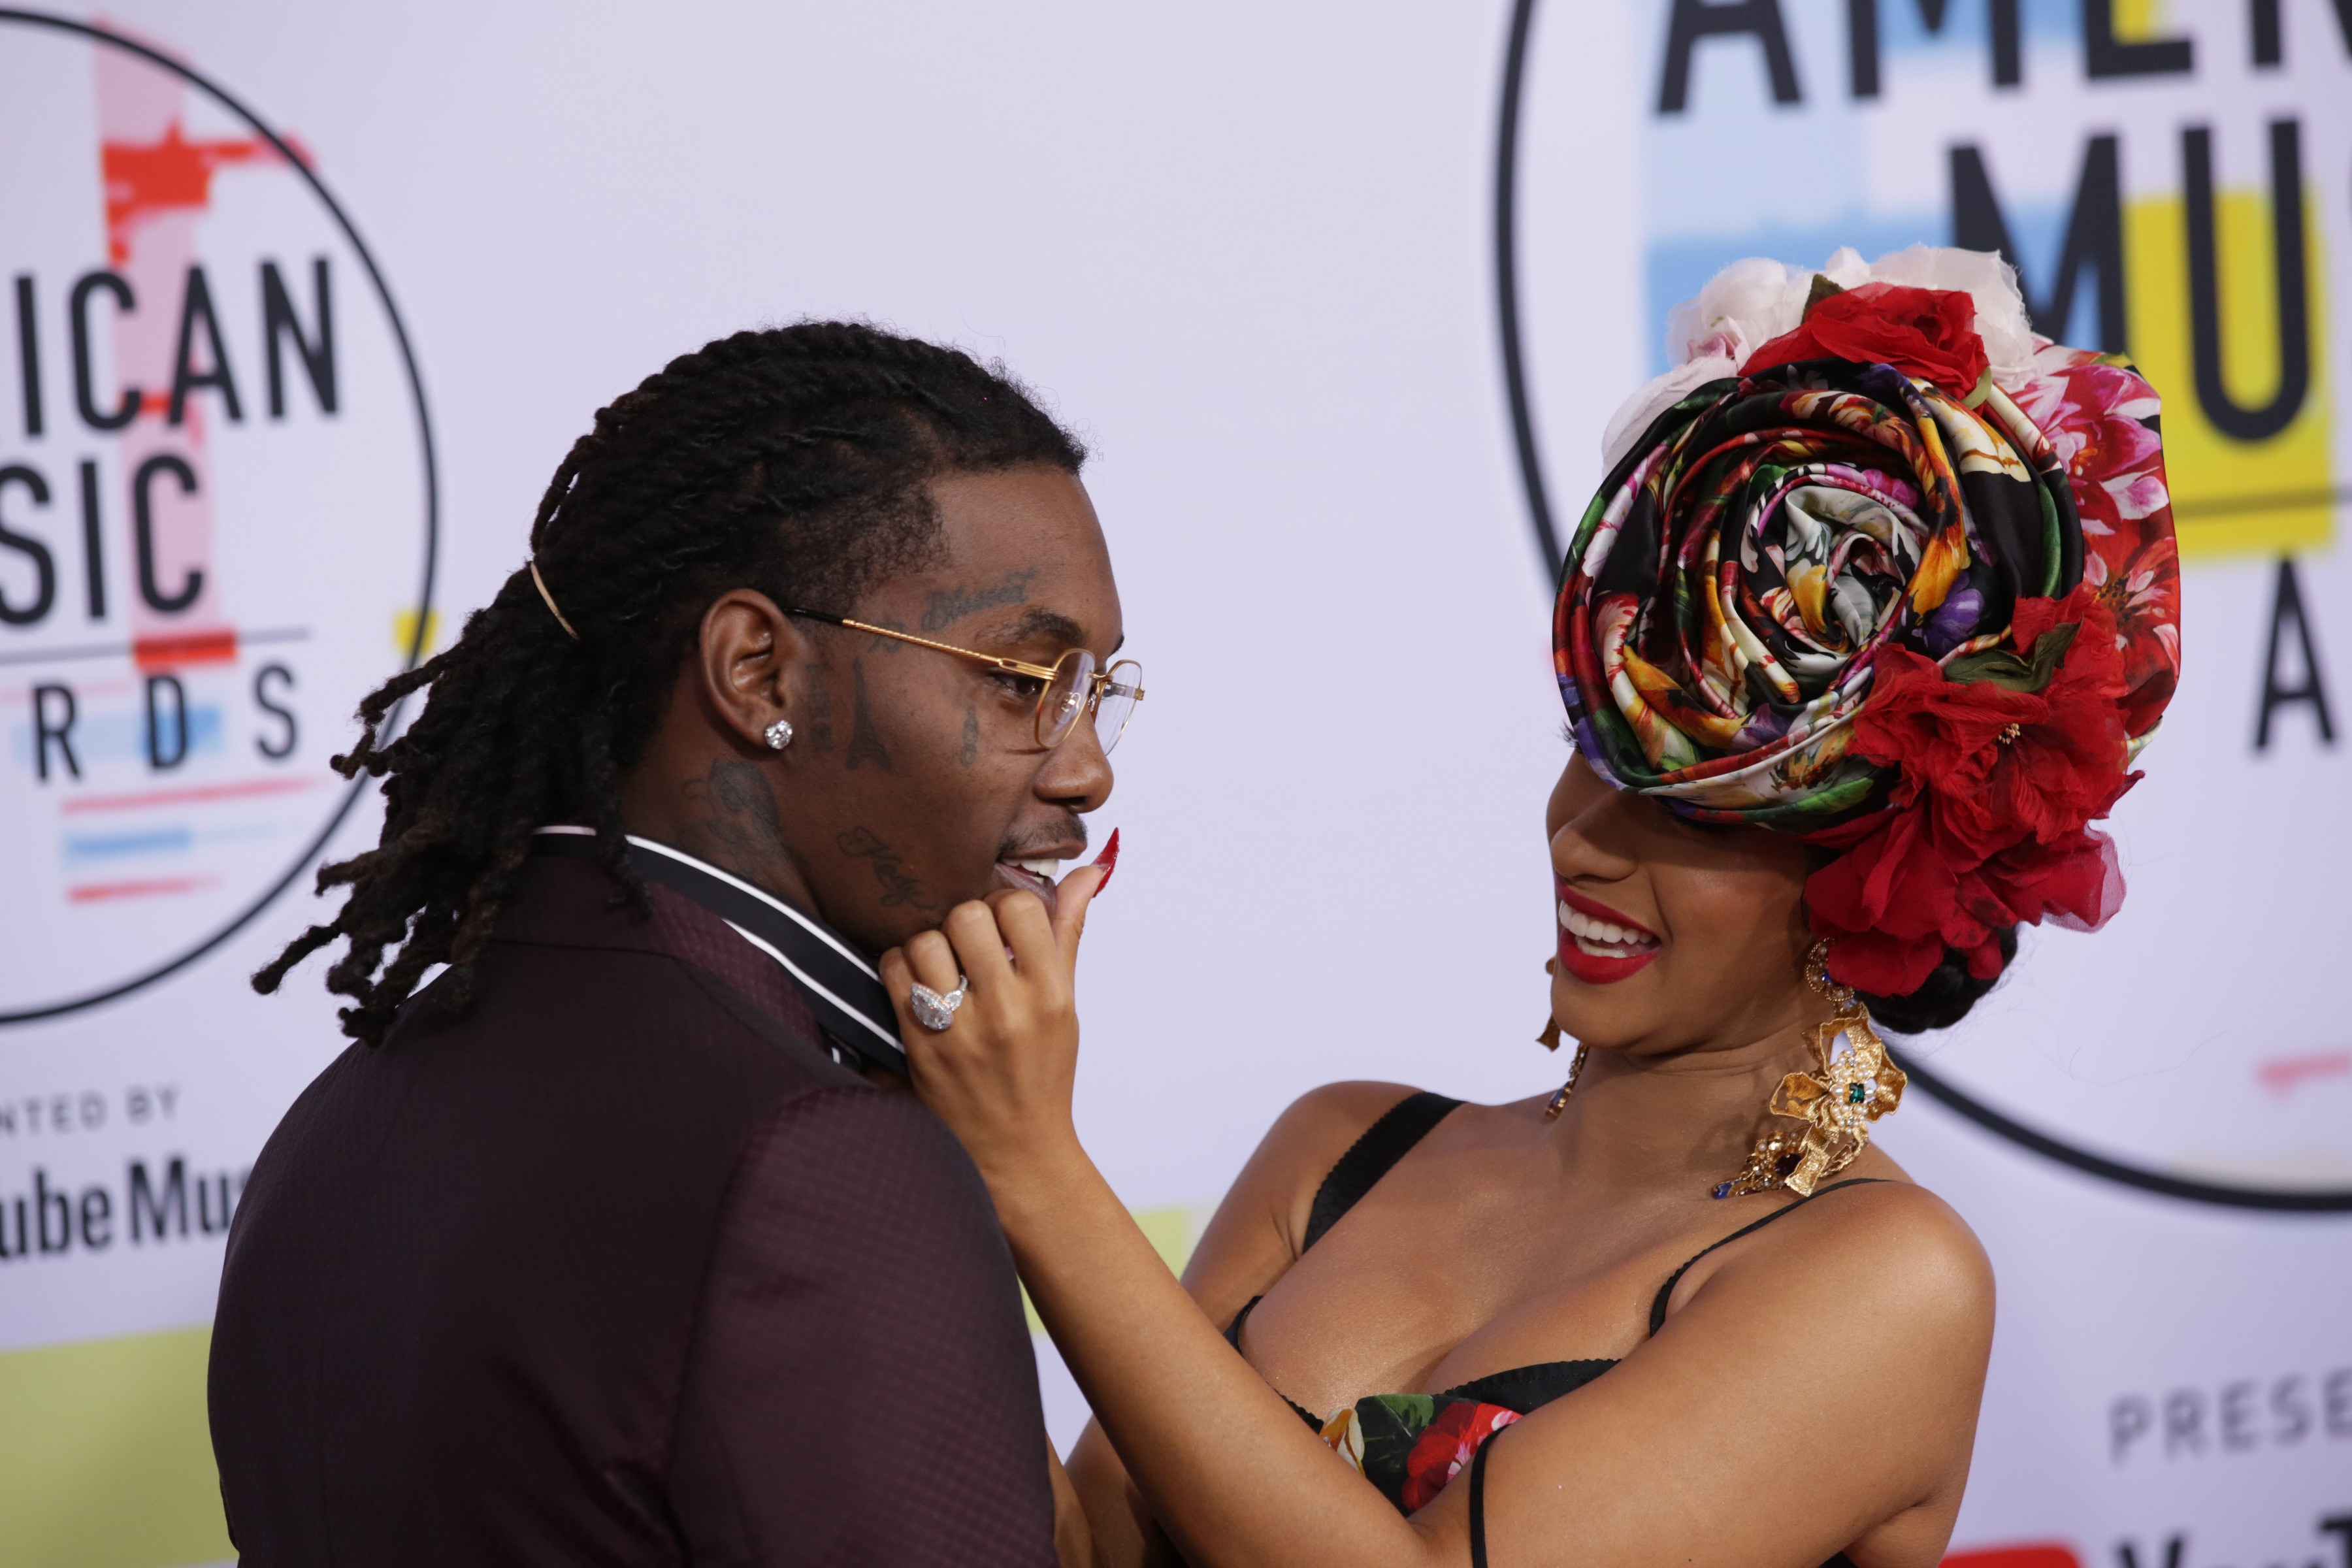 Is Offset About To Drop A New Album With Cardi B?